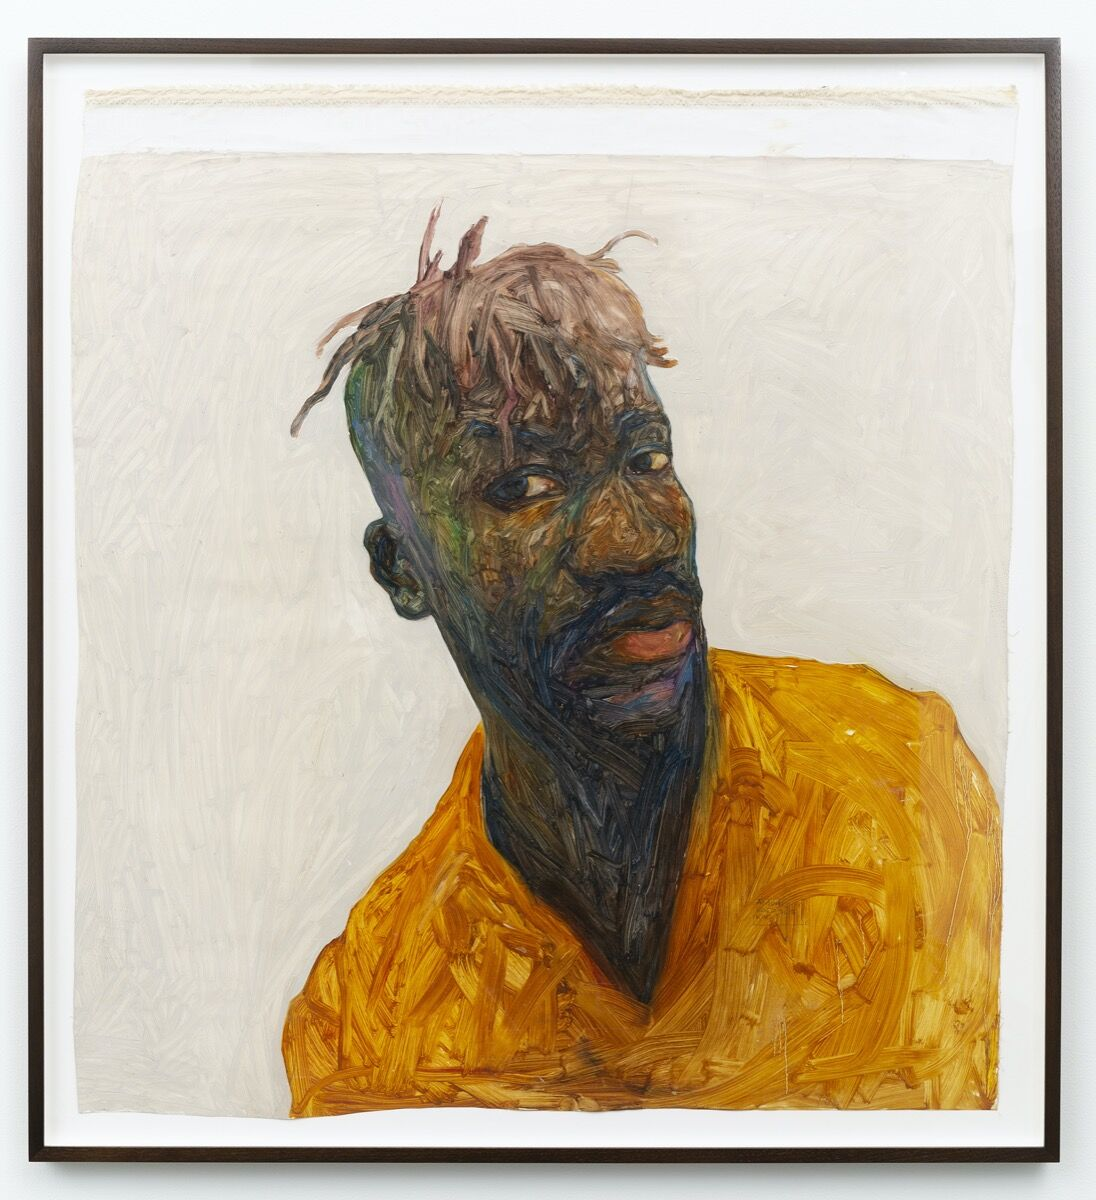 Amoako Boafo, Self portrait, 2017. © Amoako Boafo. Photo by Peter Kaise. Courtesy of the artist, Mariane Ibrahim, Roberts Projects, and Marianne Boesky.